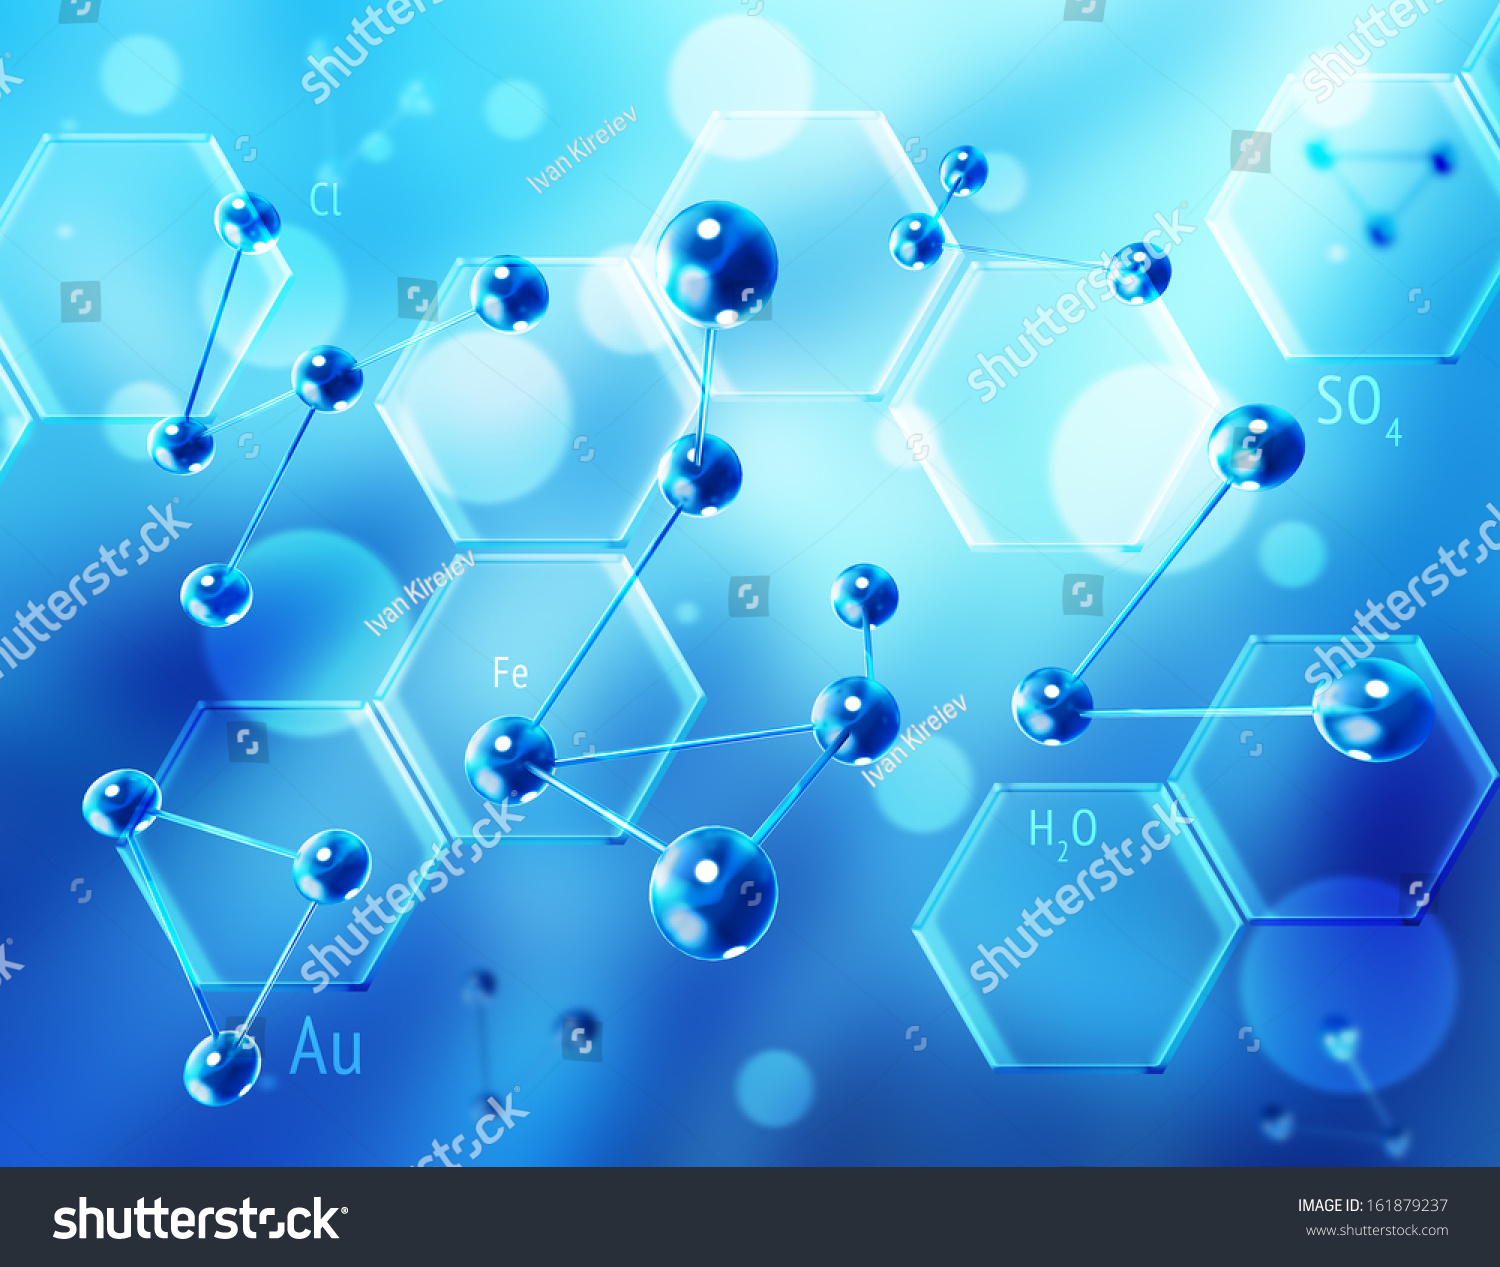 sci papers inst phys chem research New hot papers emerging research fronts ld landau theoret phys inst, moscow, russia isaac newton inst math sci, cambridge.